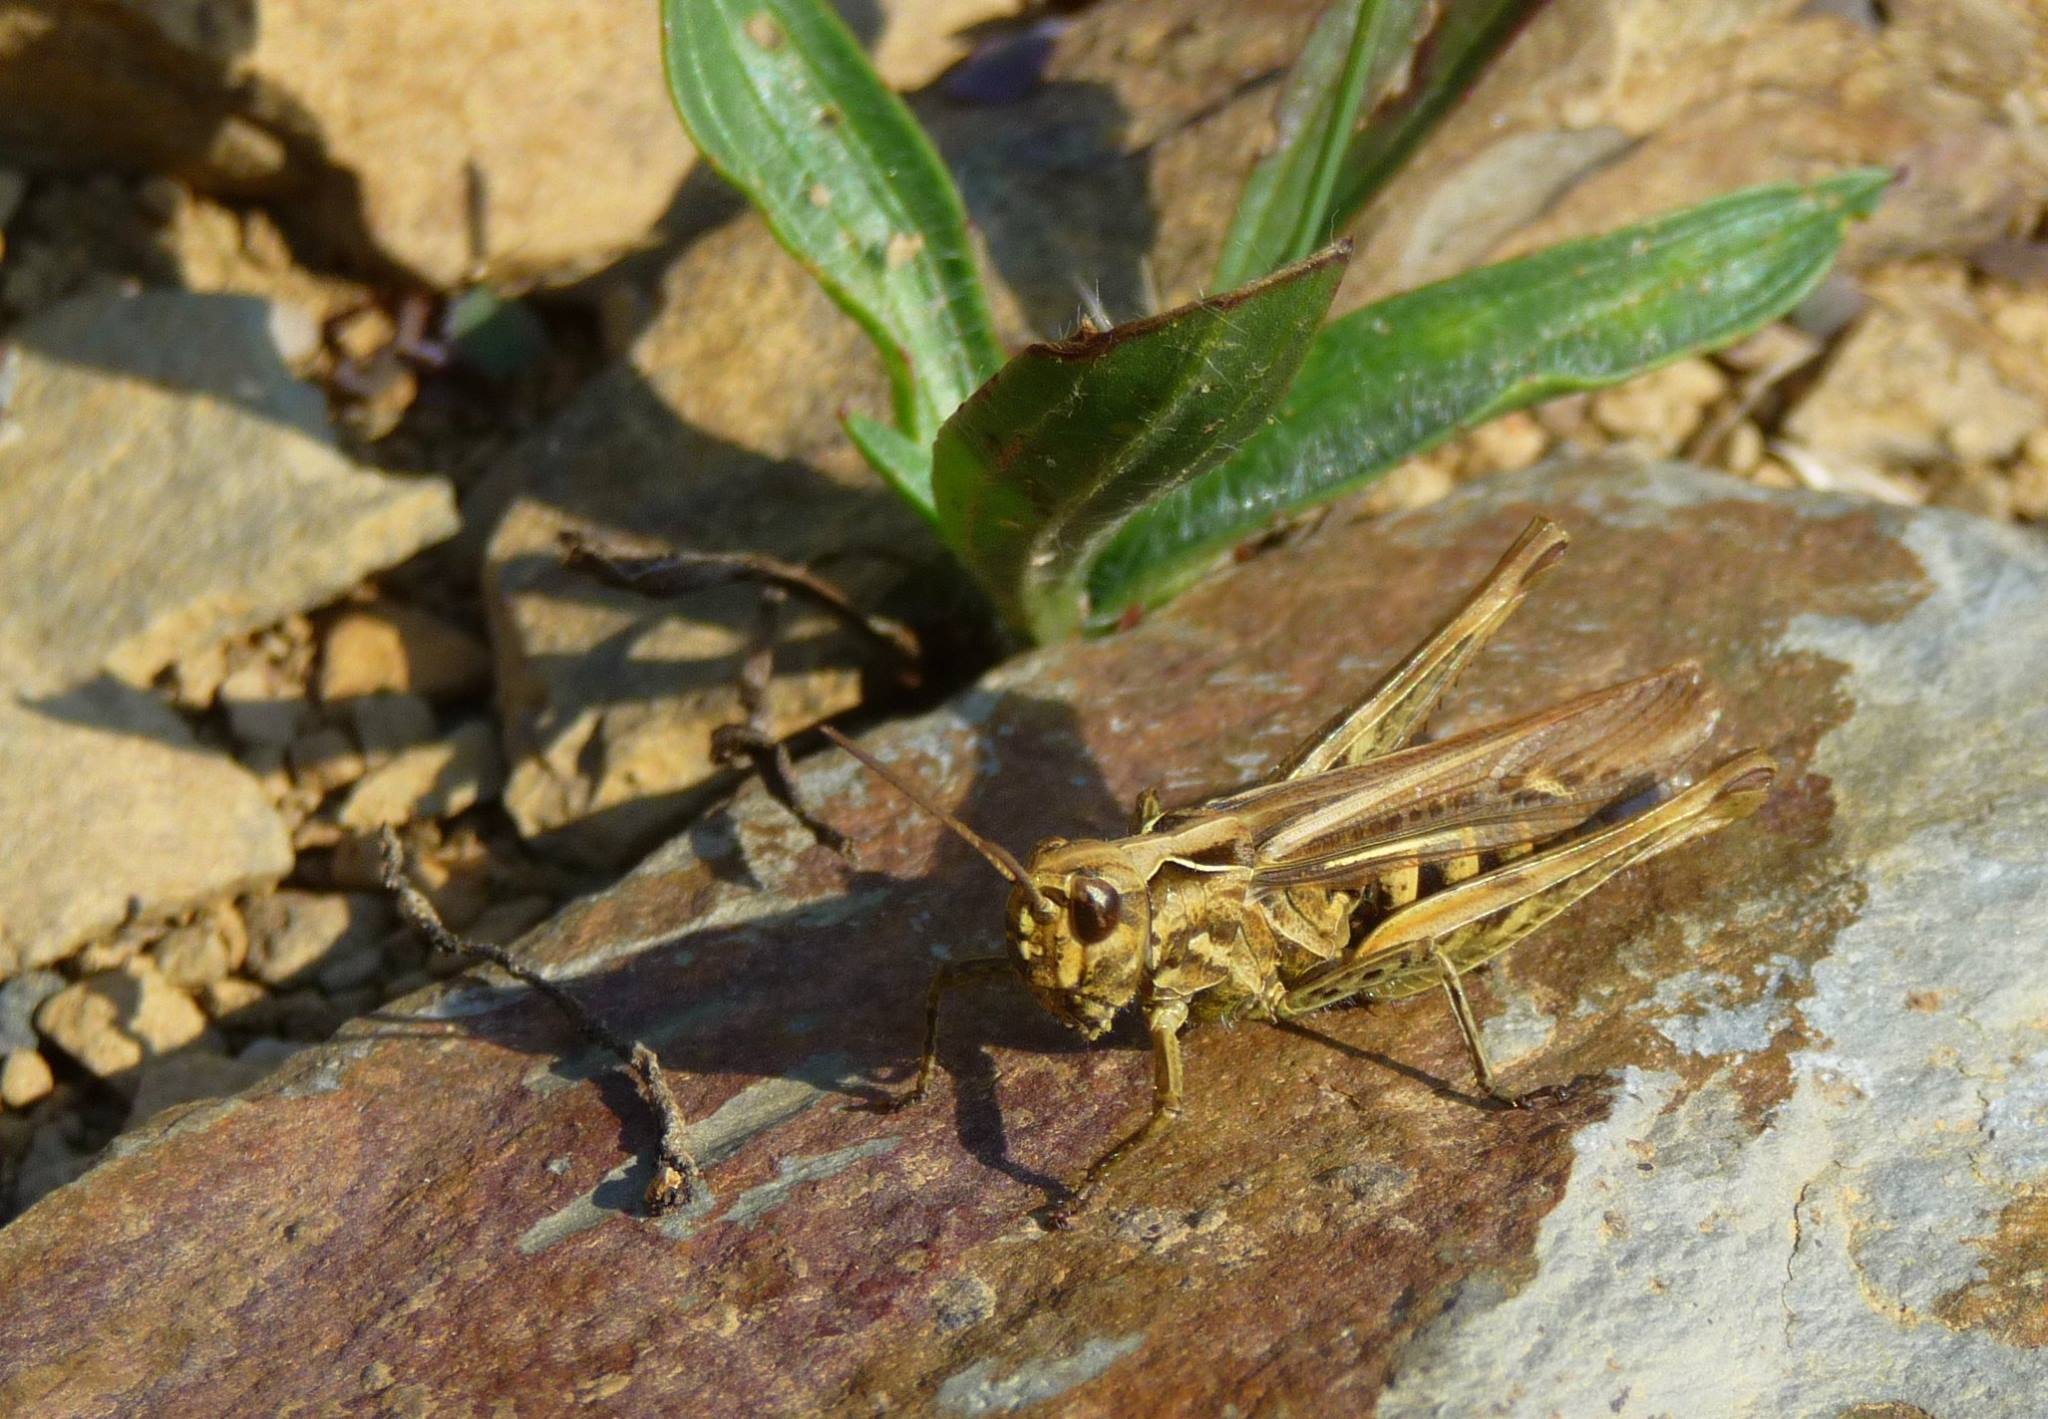 A grasshopper sitting on a rock with a plant in the background